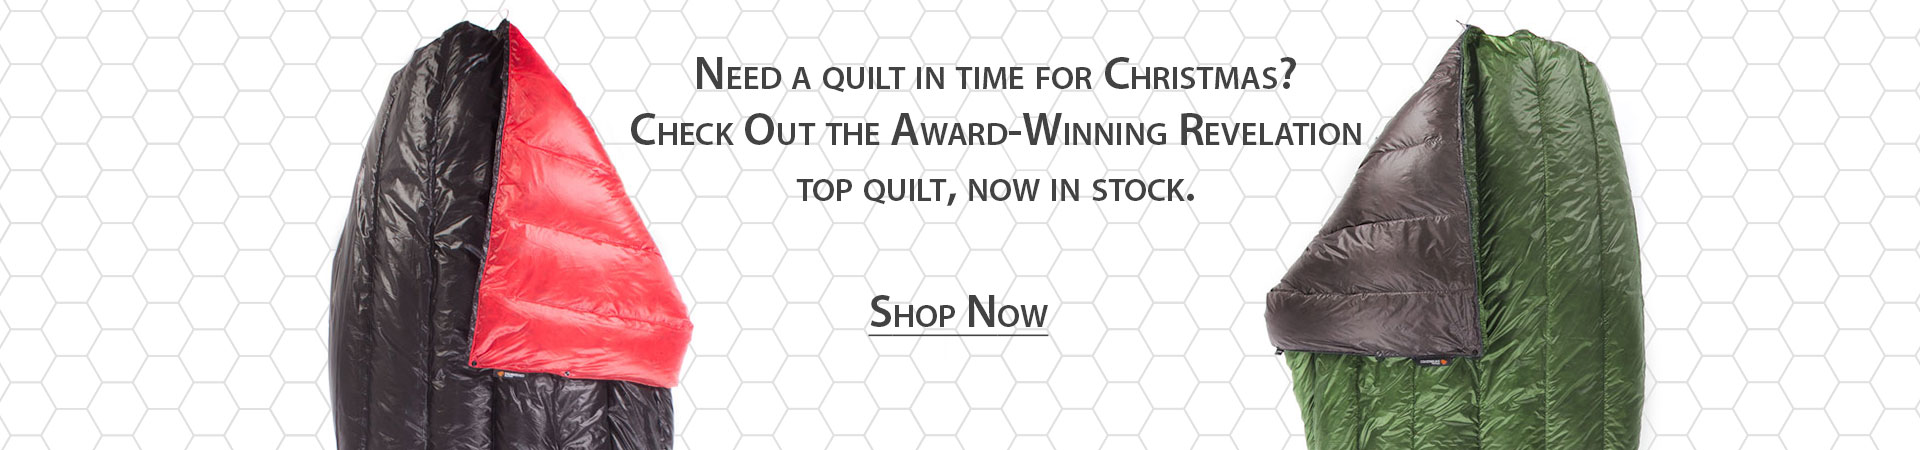 Revelation Top Quilt Now In Stock